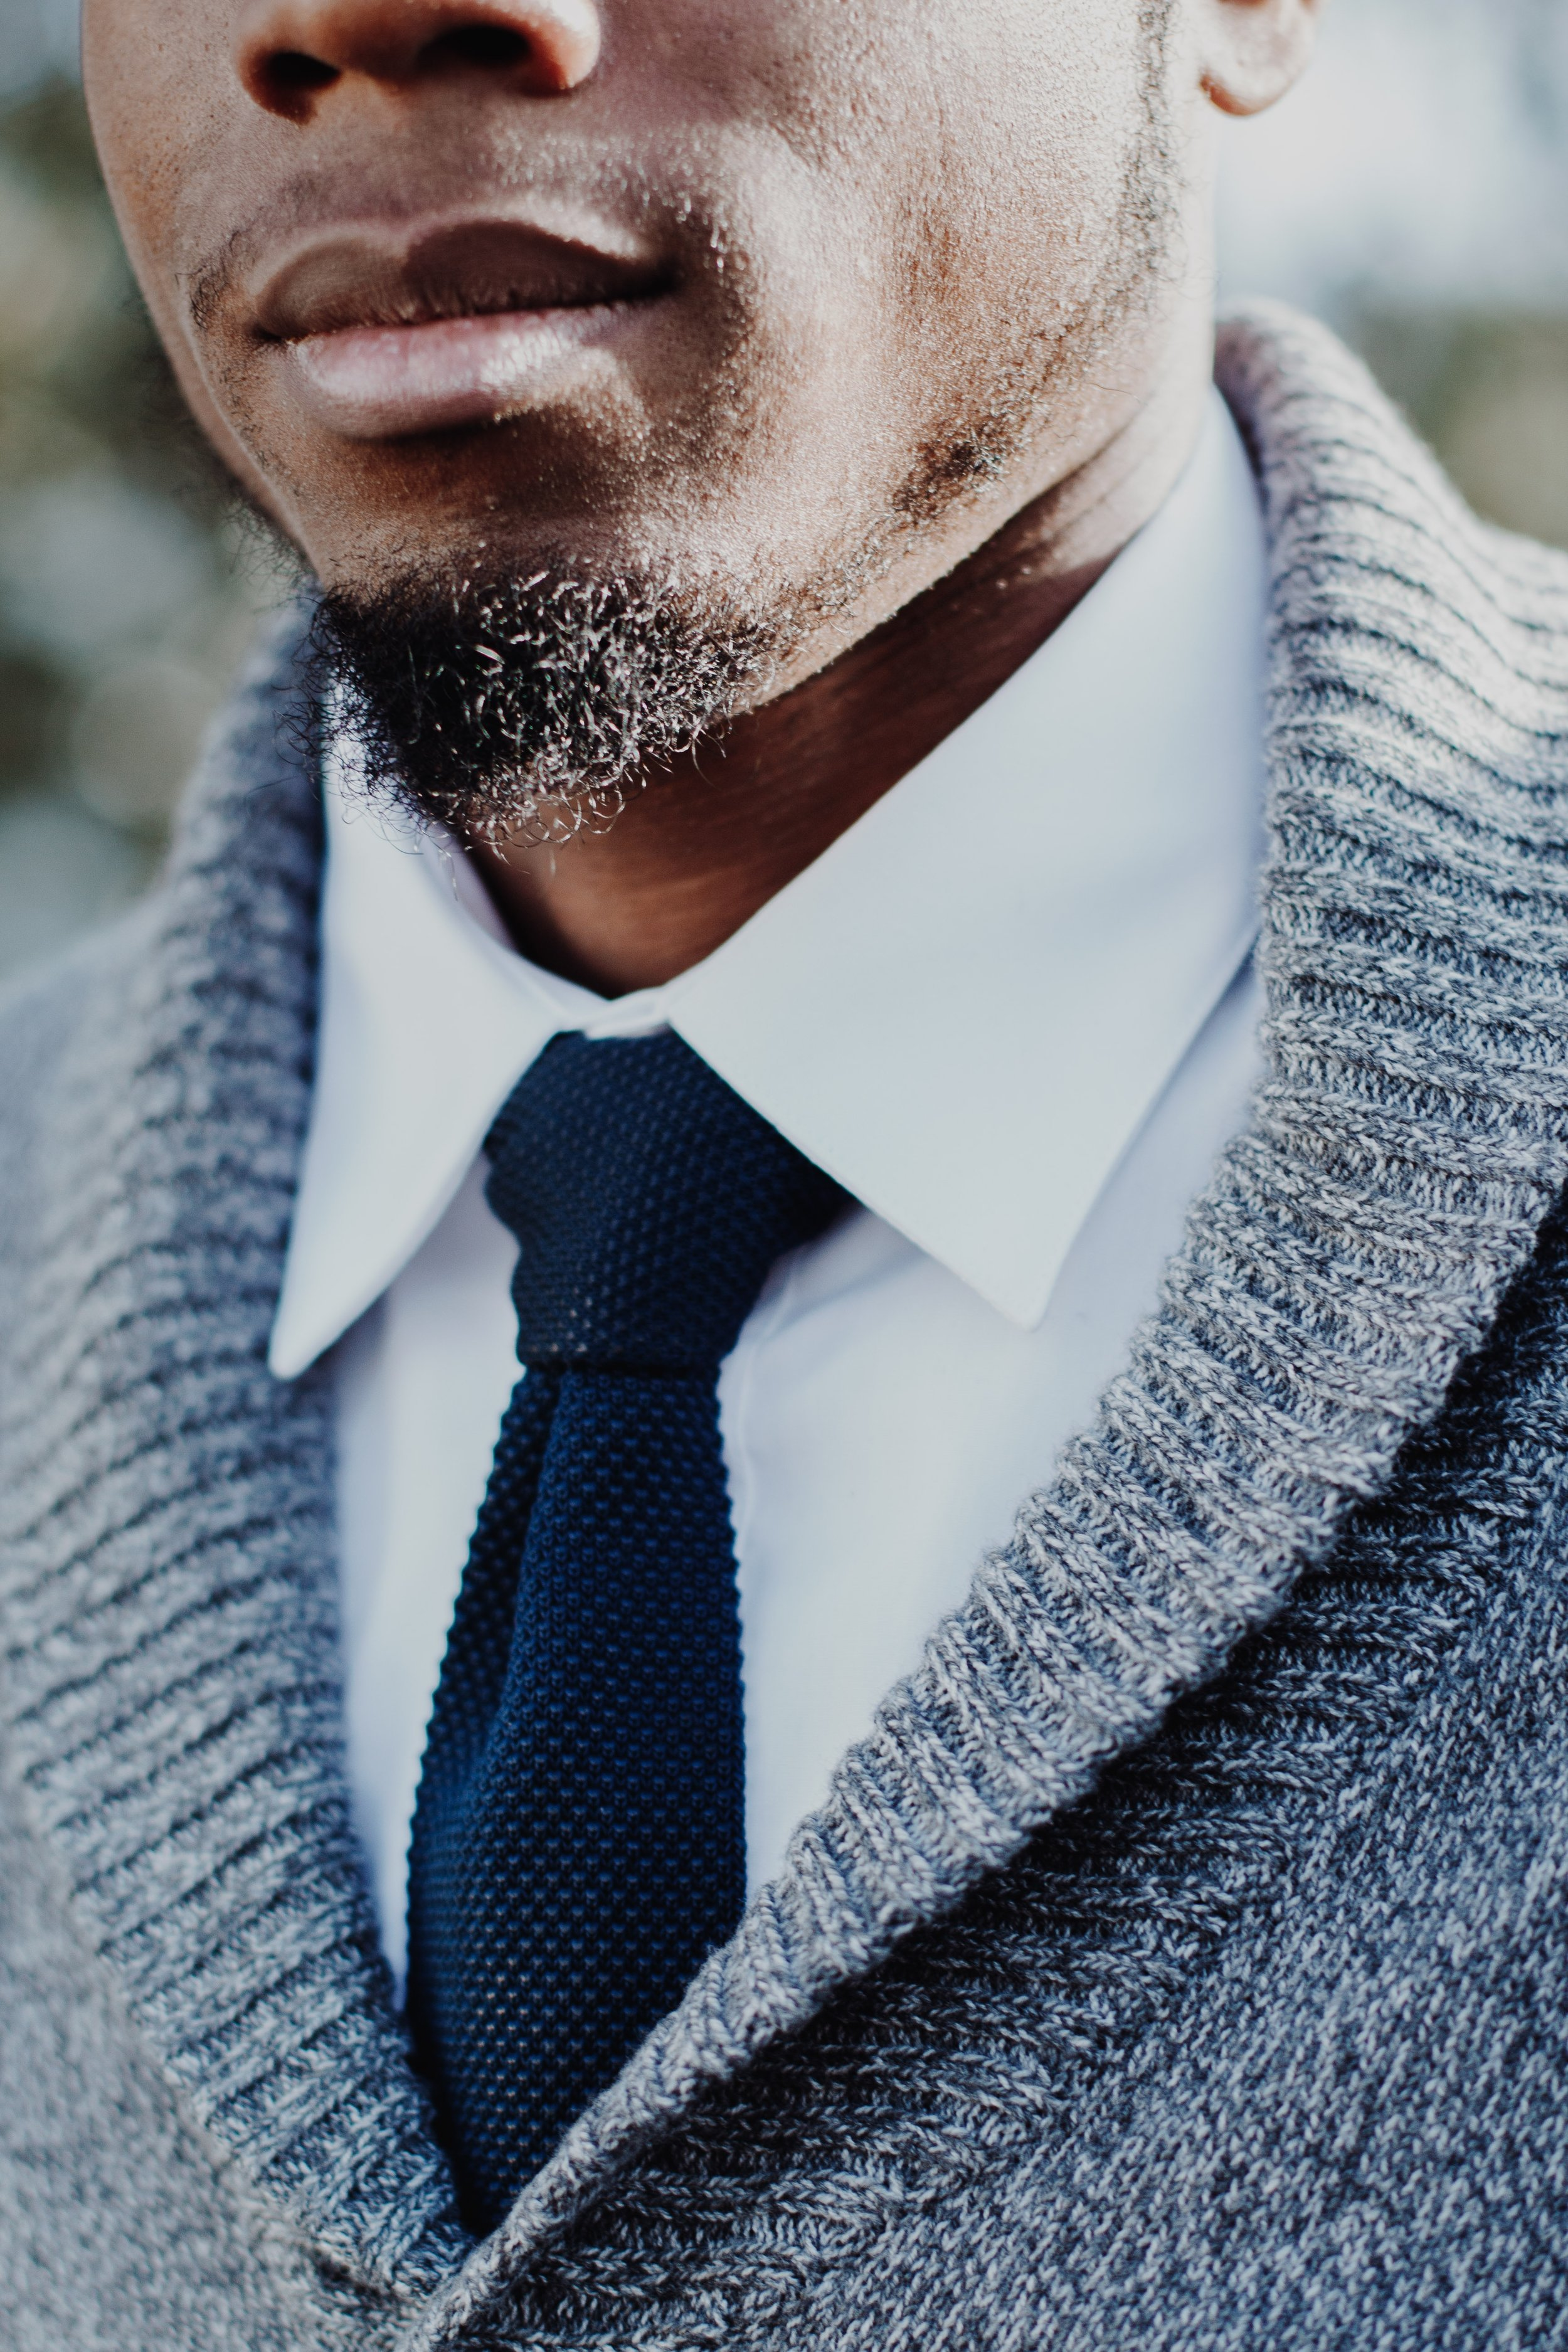 1. Start With Why - Before you shop and before you dress or groom yourself ask yourself